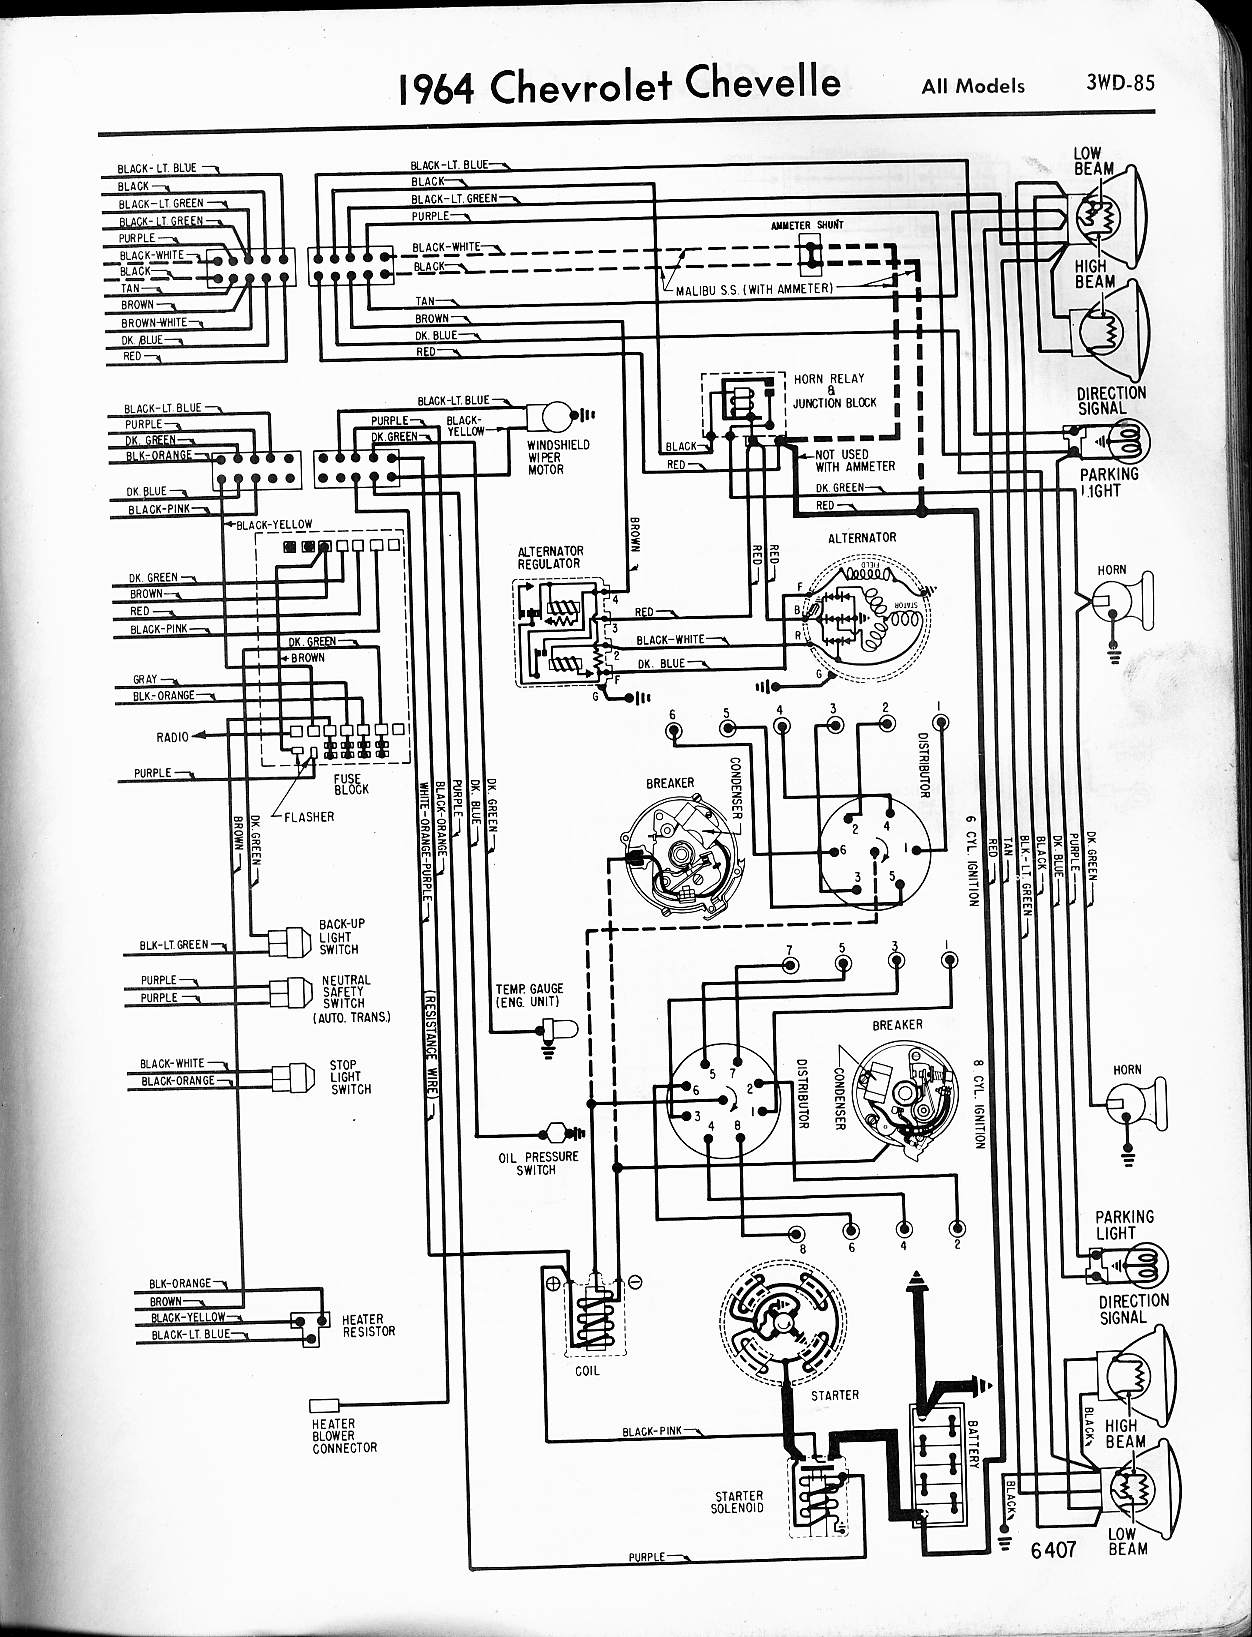 2002 Chevrolet Malibu Radio Wiring Diagram